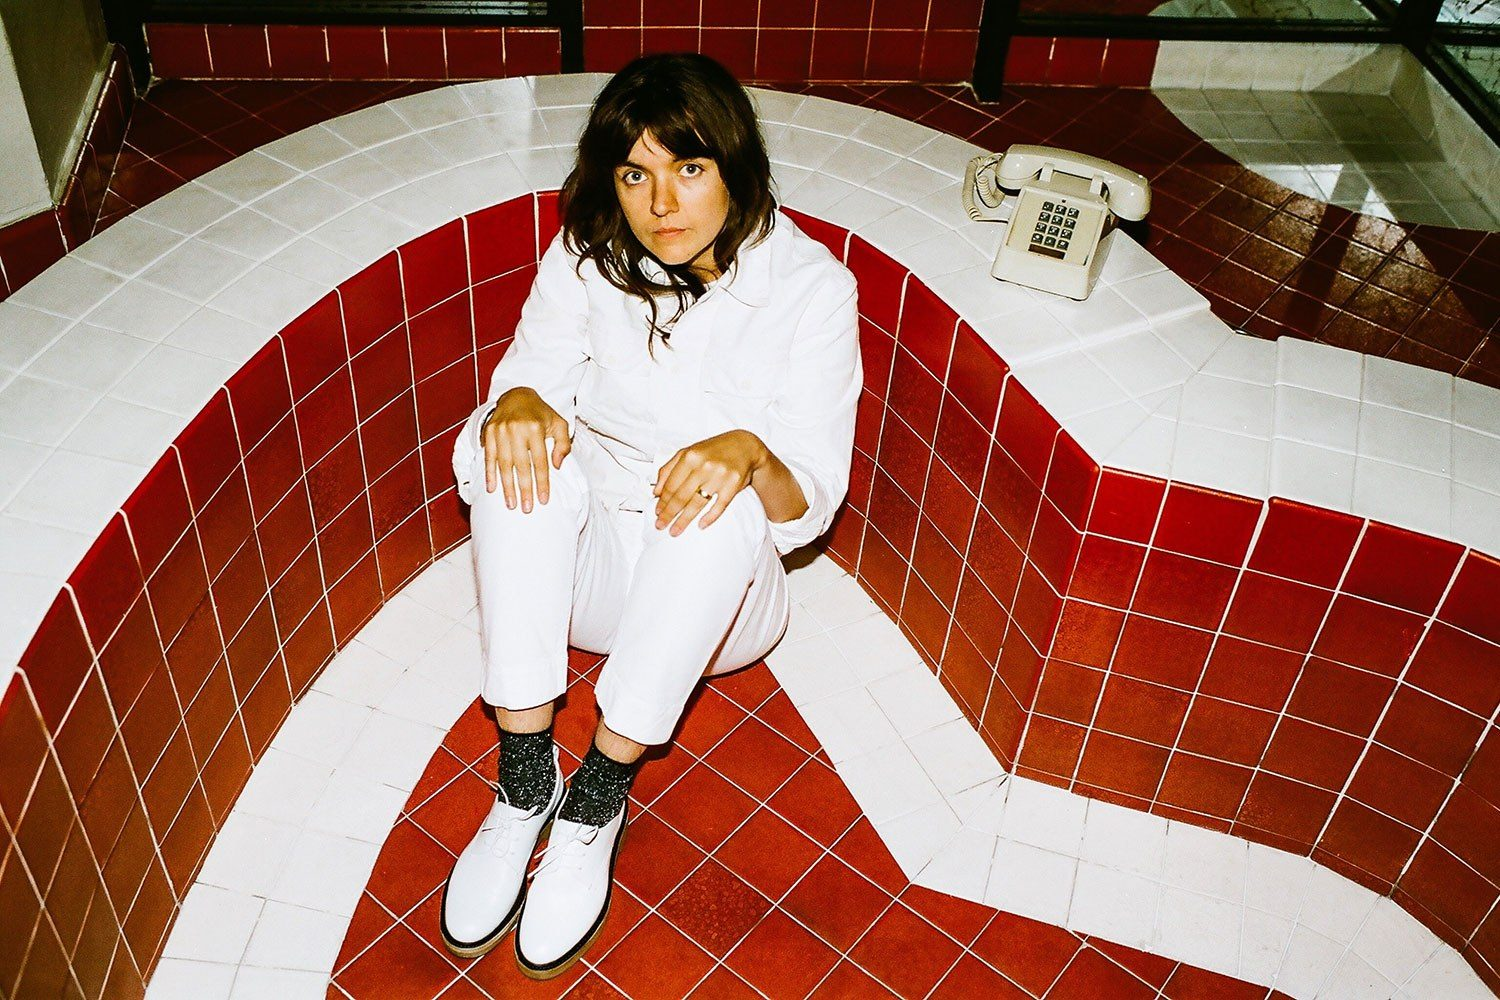 Check out Courtney Barnett's new album, 'Tell Me How You Really Feel'